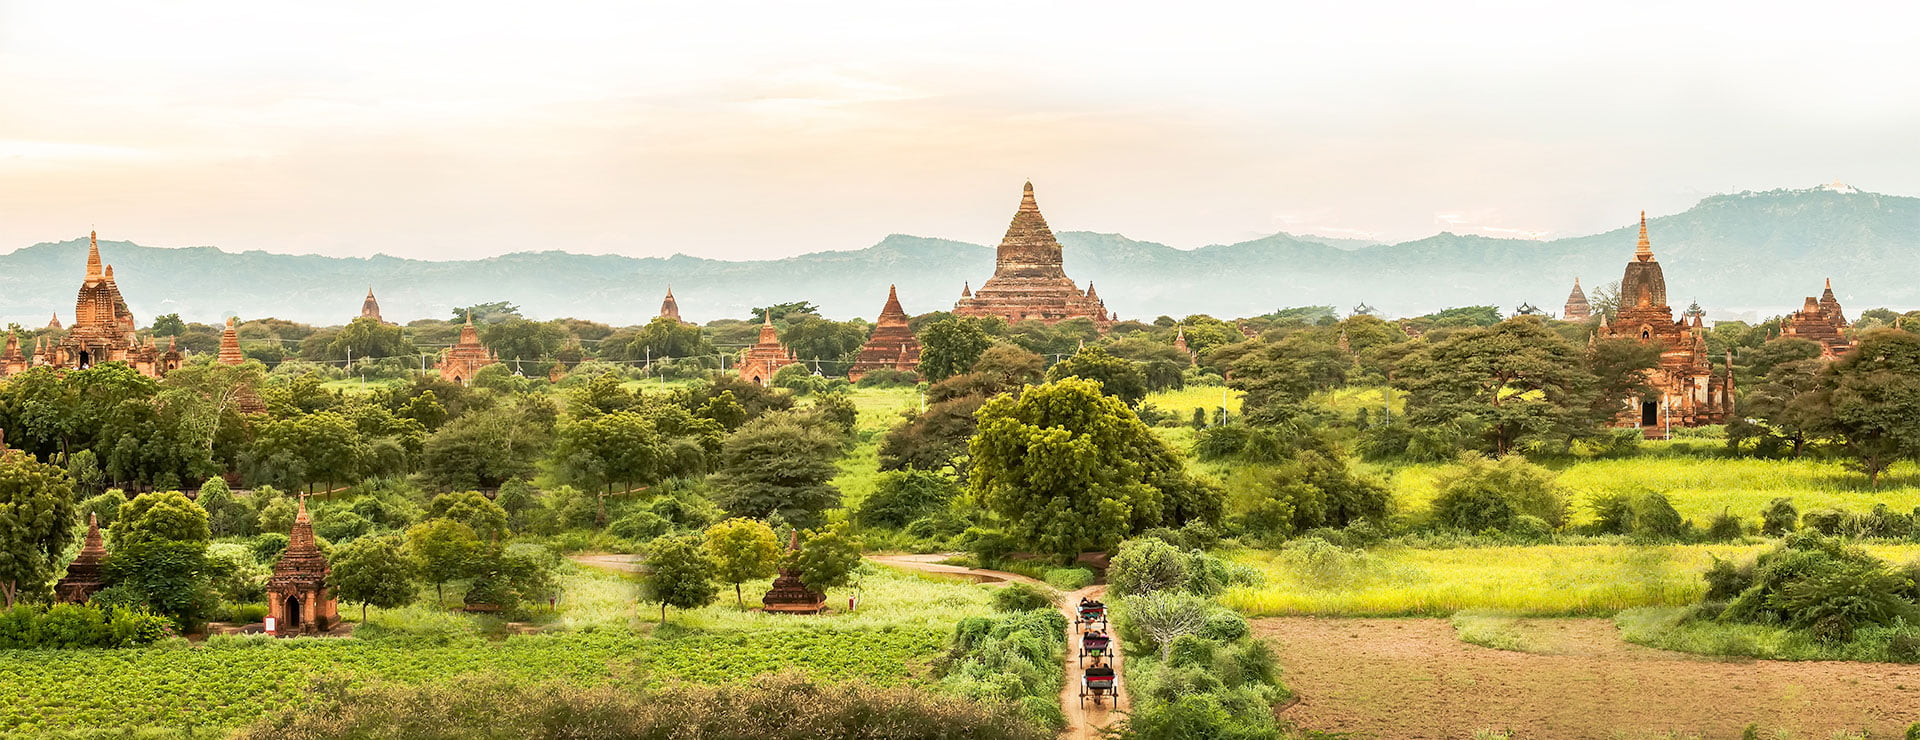 Top sights that reveal the most spectacular aspect of Myanmar